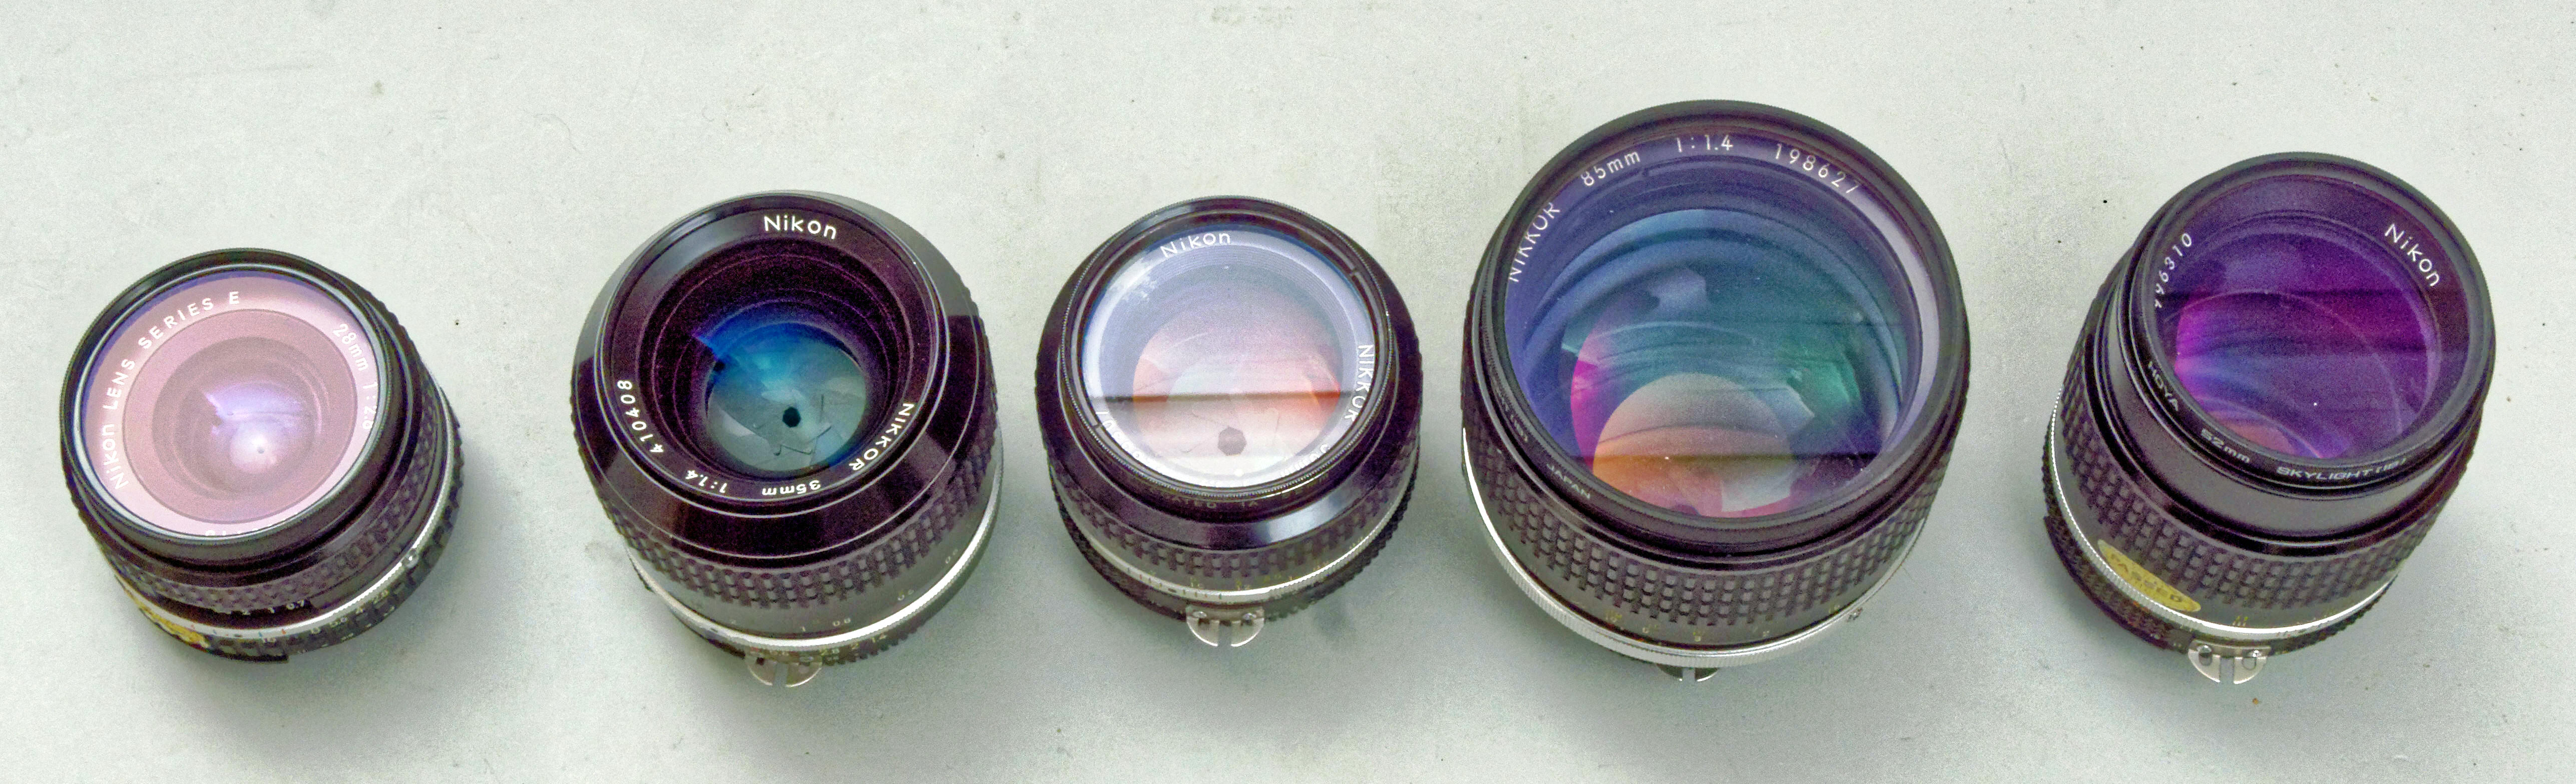 Nikon-lenses-3.jpeg